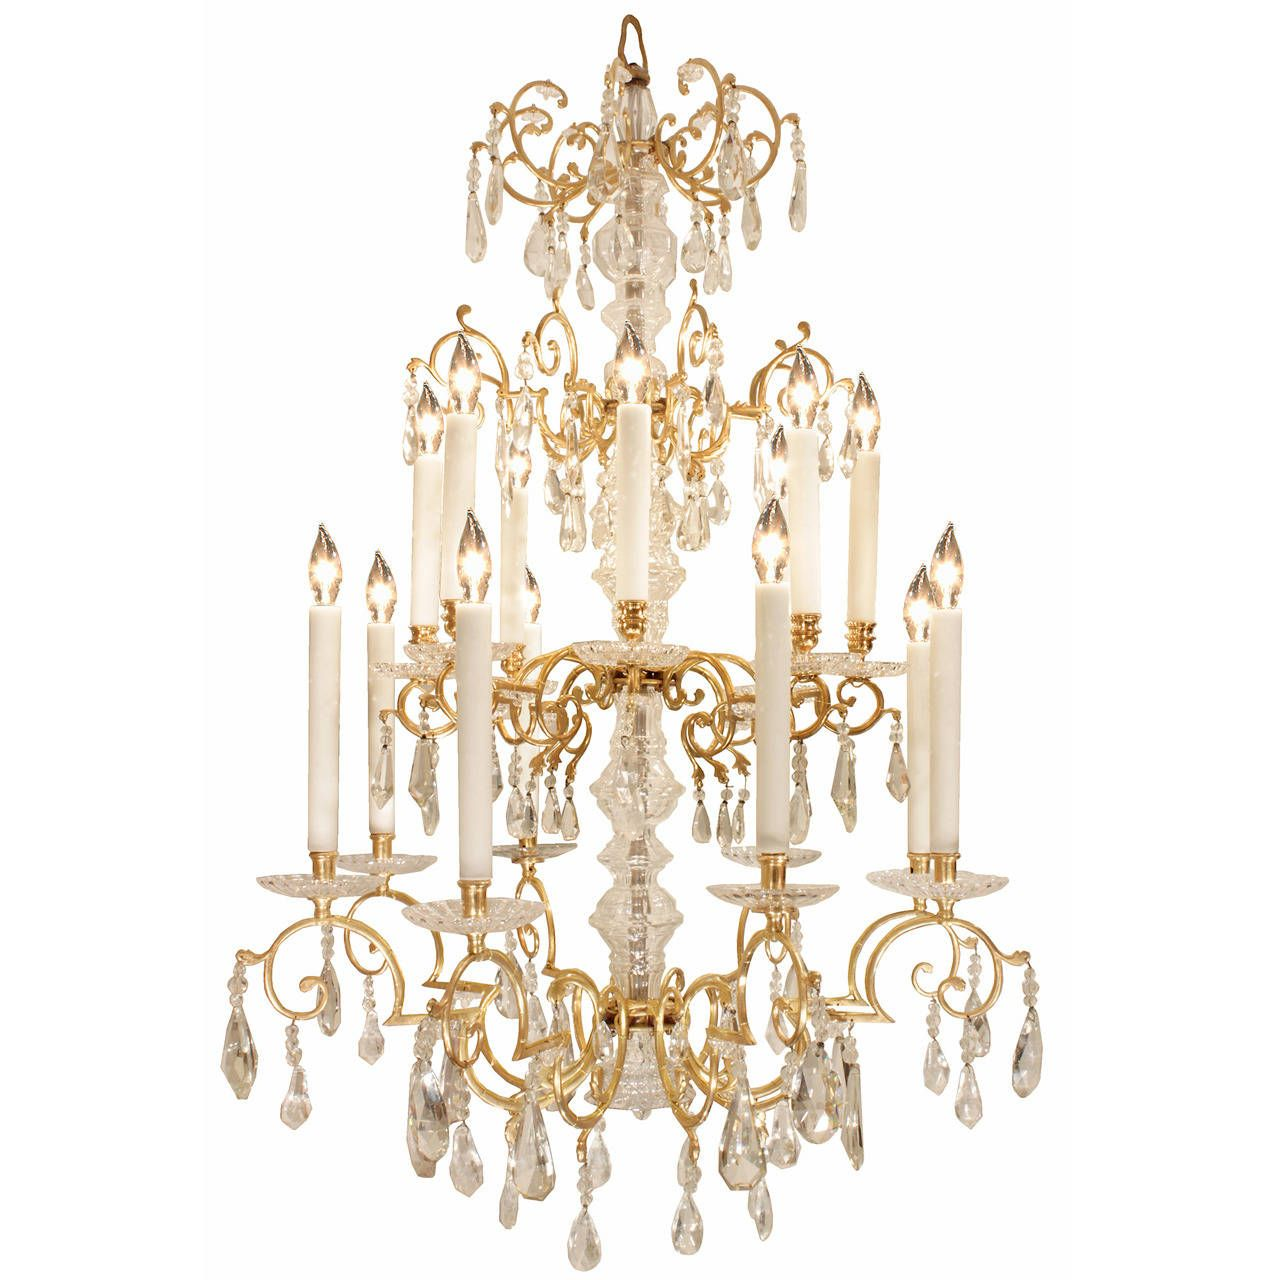 French th century louis xvi style baccarat and rock crystal